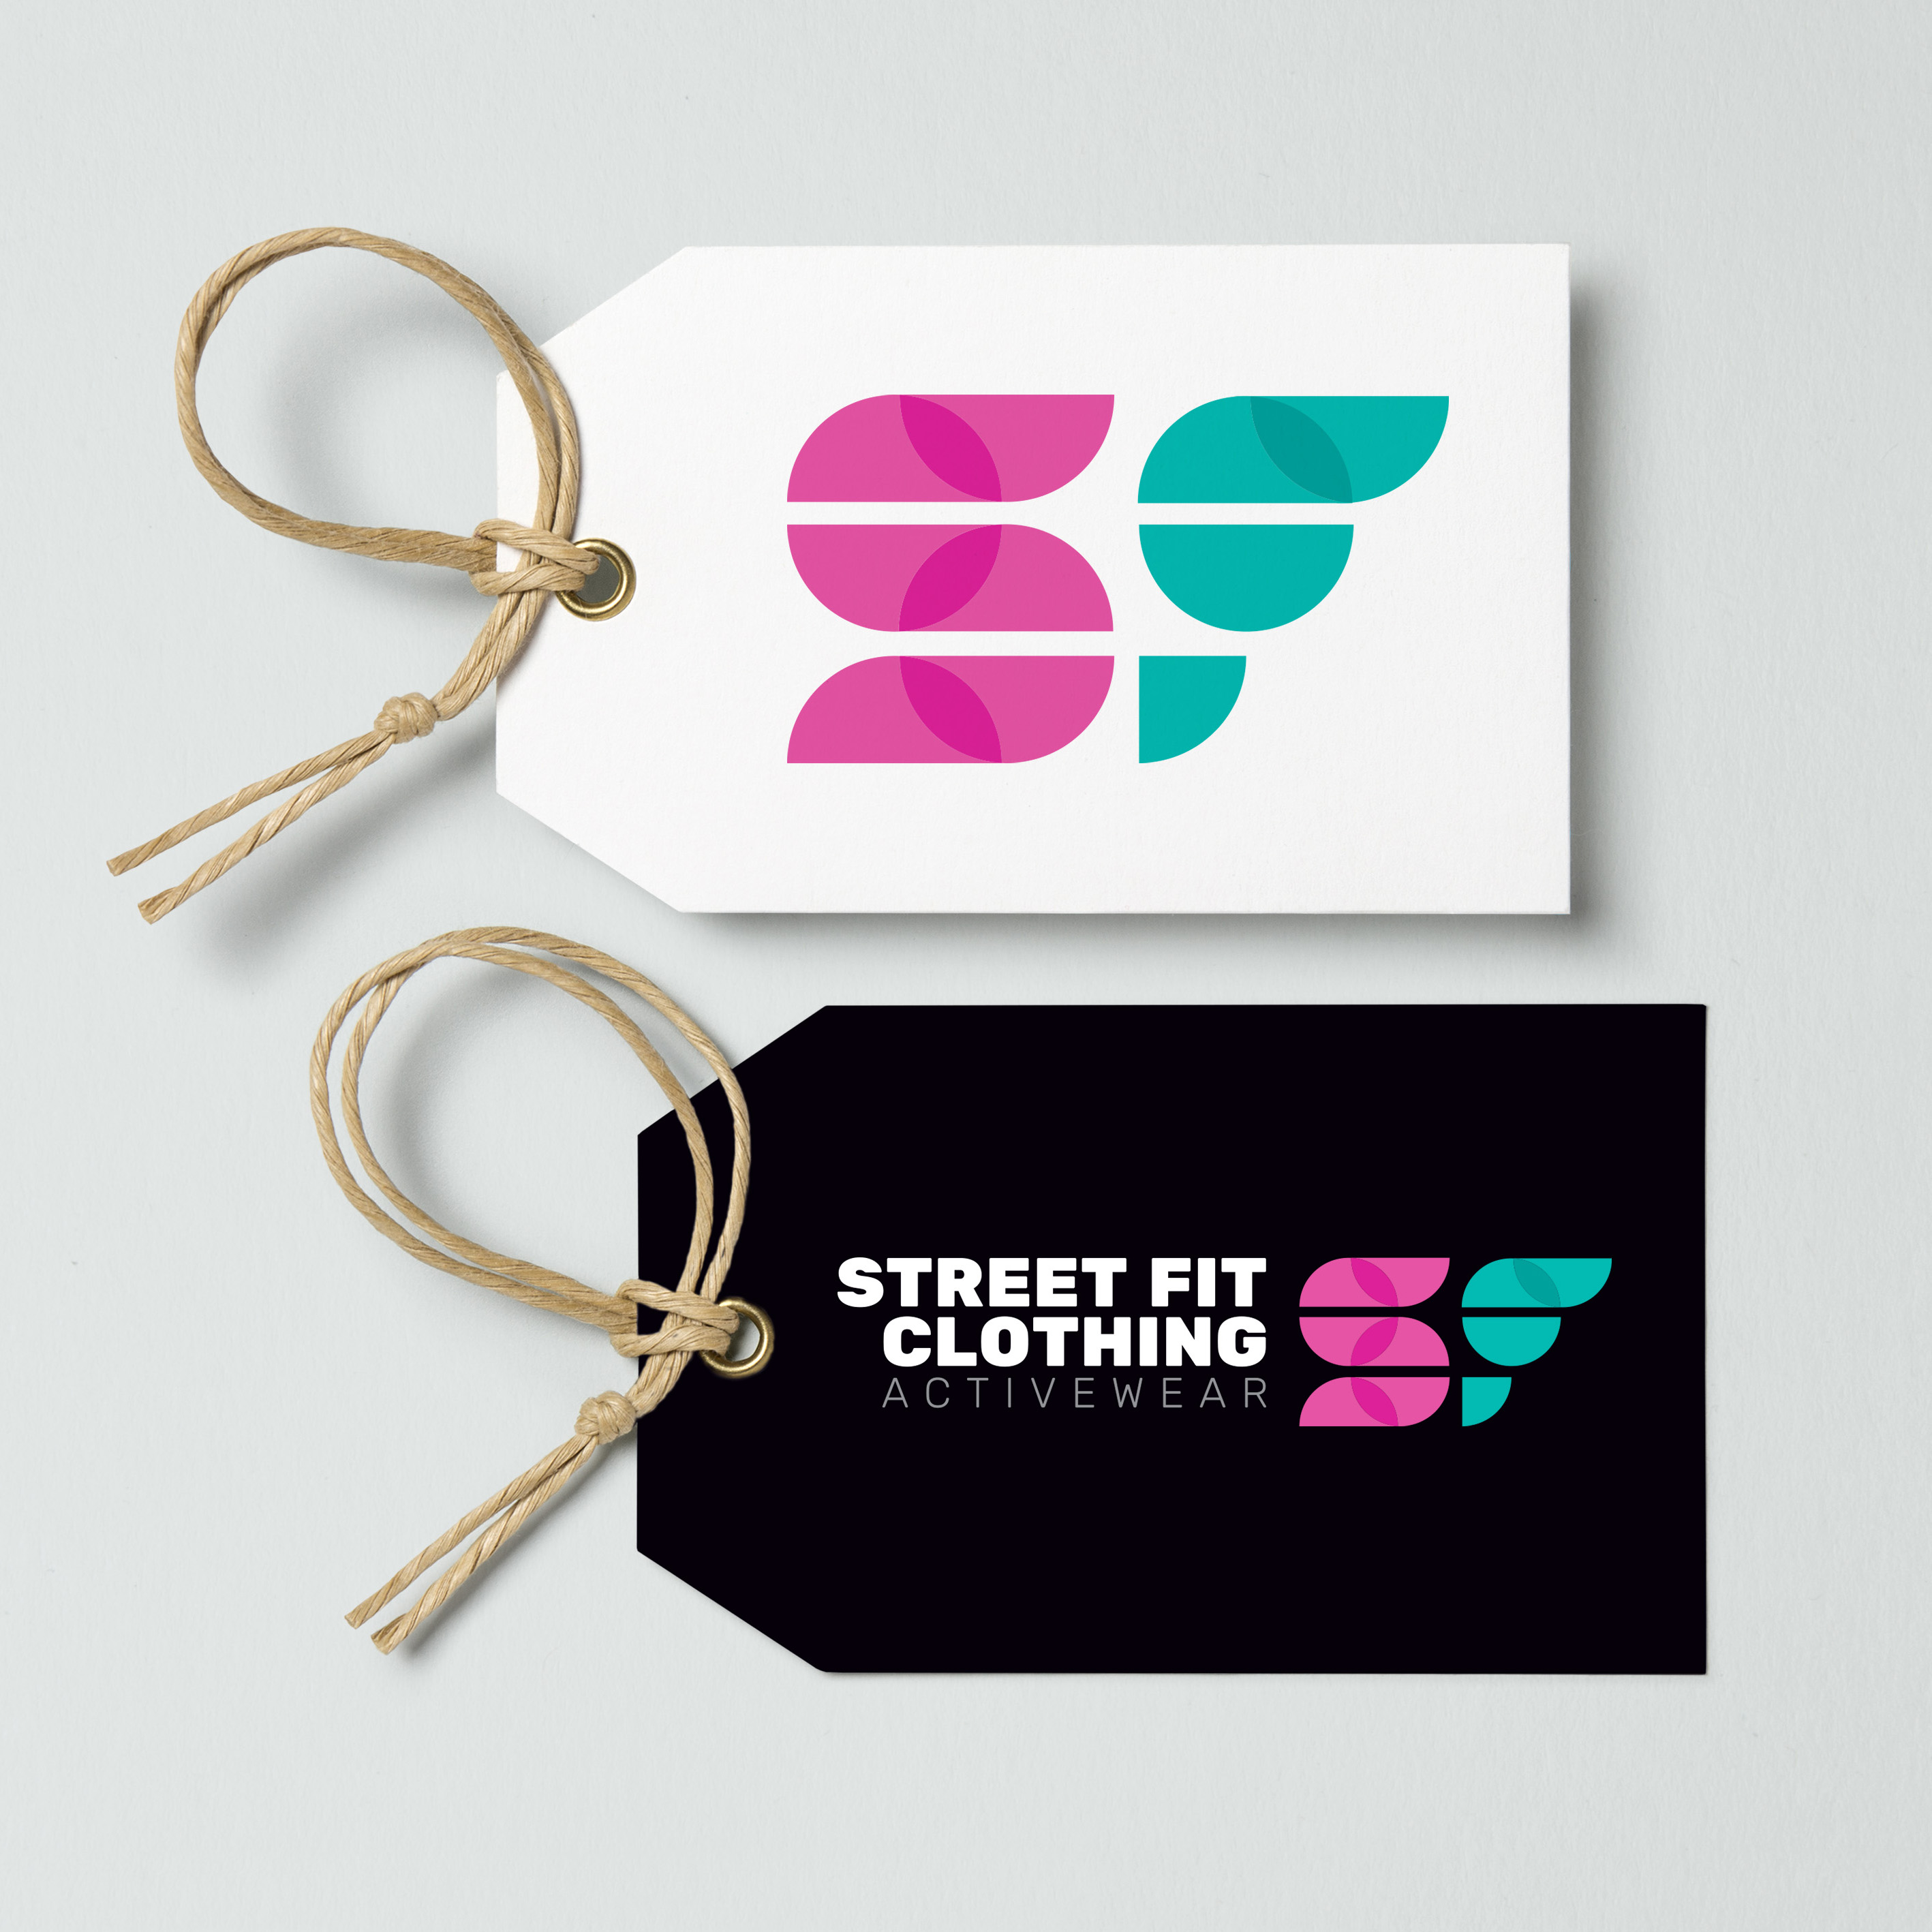 Street fit clothing tag